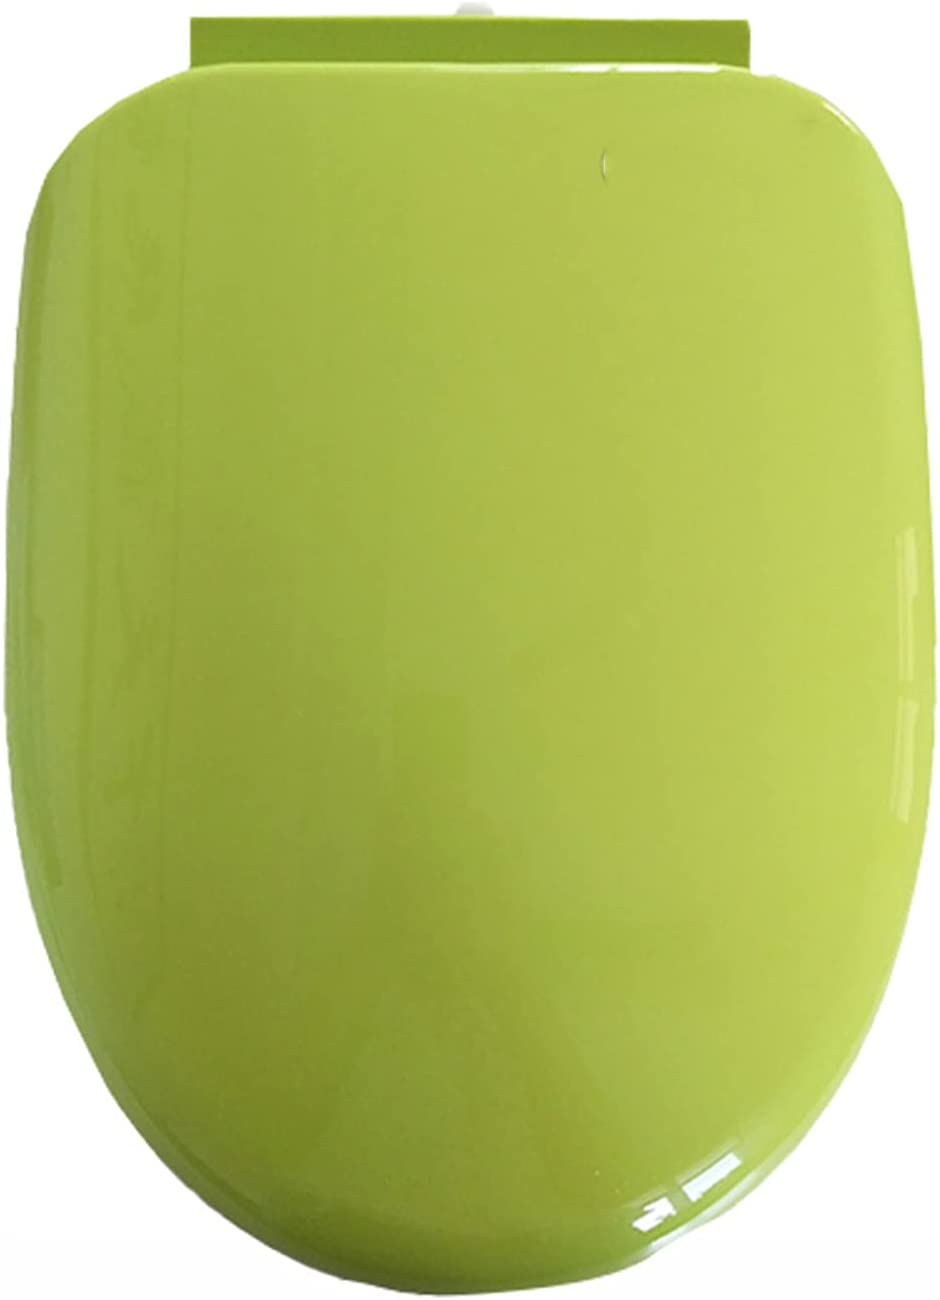 WEITONG Color Toilet Seat, U Type Comfortable Toilet Seat, Thicken Toilet Seat, Loads Up to 400 Lb, Easy to Clean & Install(Yellow, Red, Green, Blue, Purple)